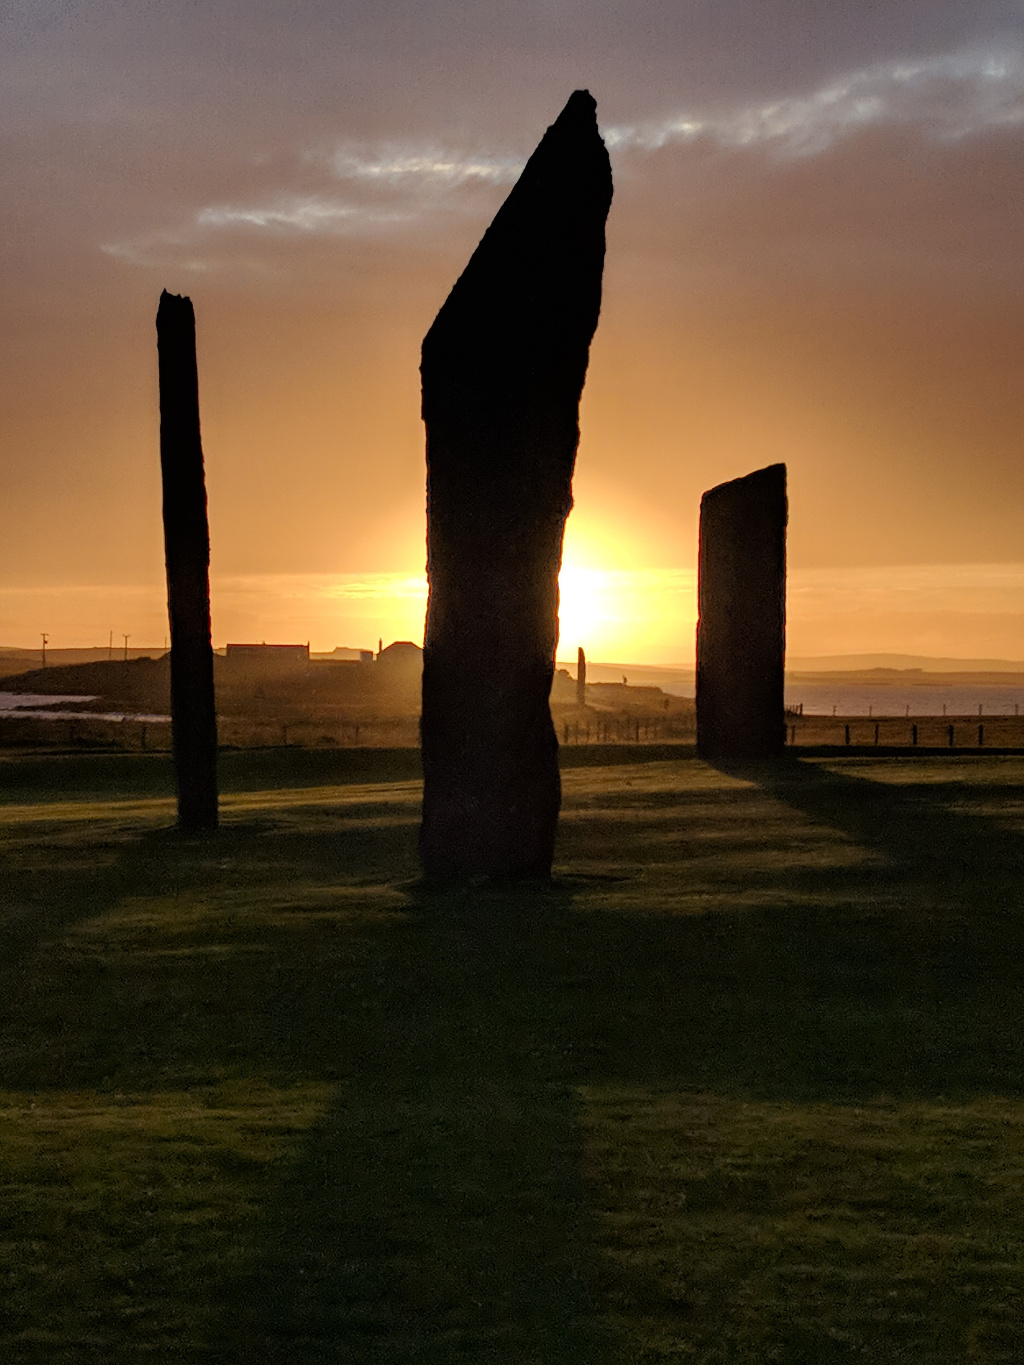 Standing Stones of Stenness (2018)